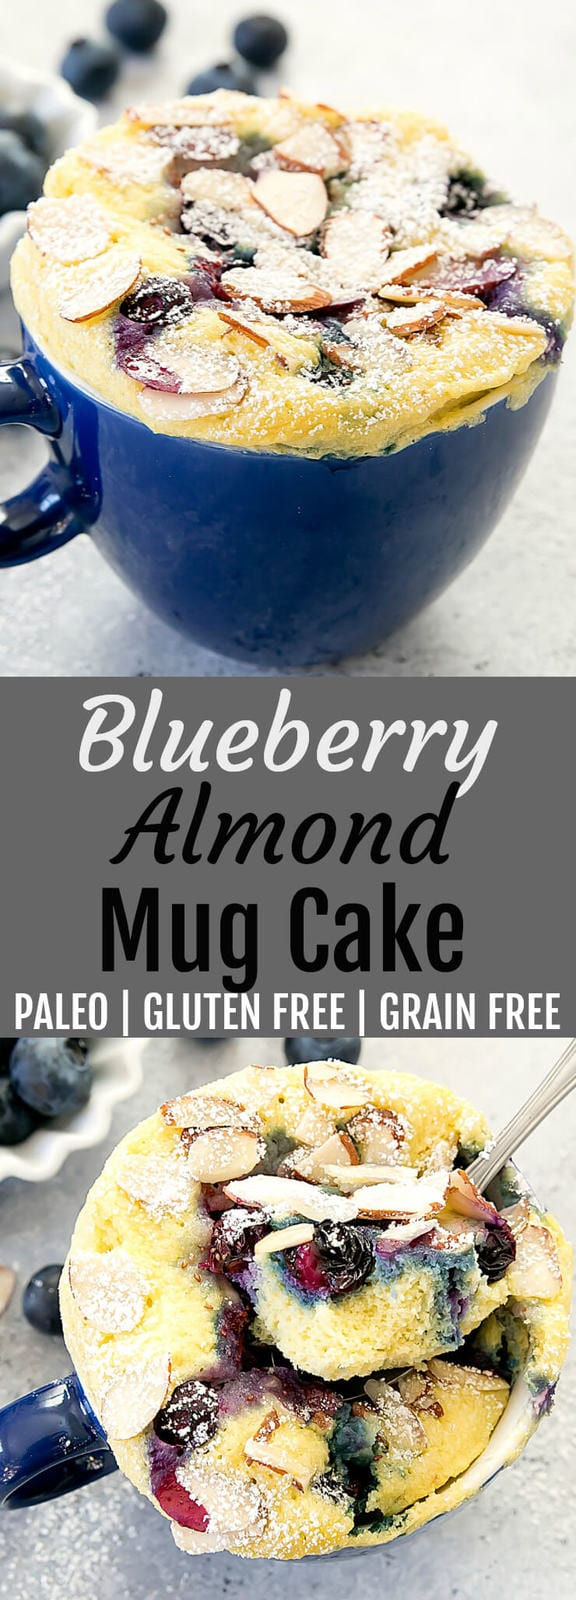 Blueberry Almond Mug Cake. Gluten free, wheat flour free and paleo. This fluffy single serving cake cooks in the microwave in less than 2 minutes.